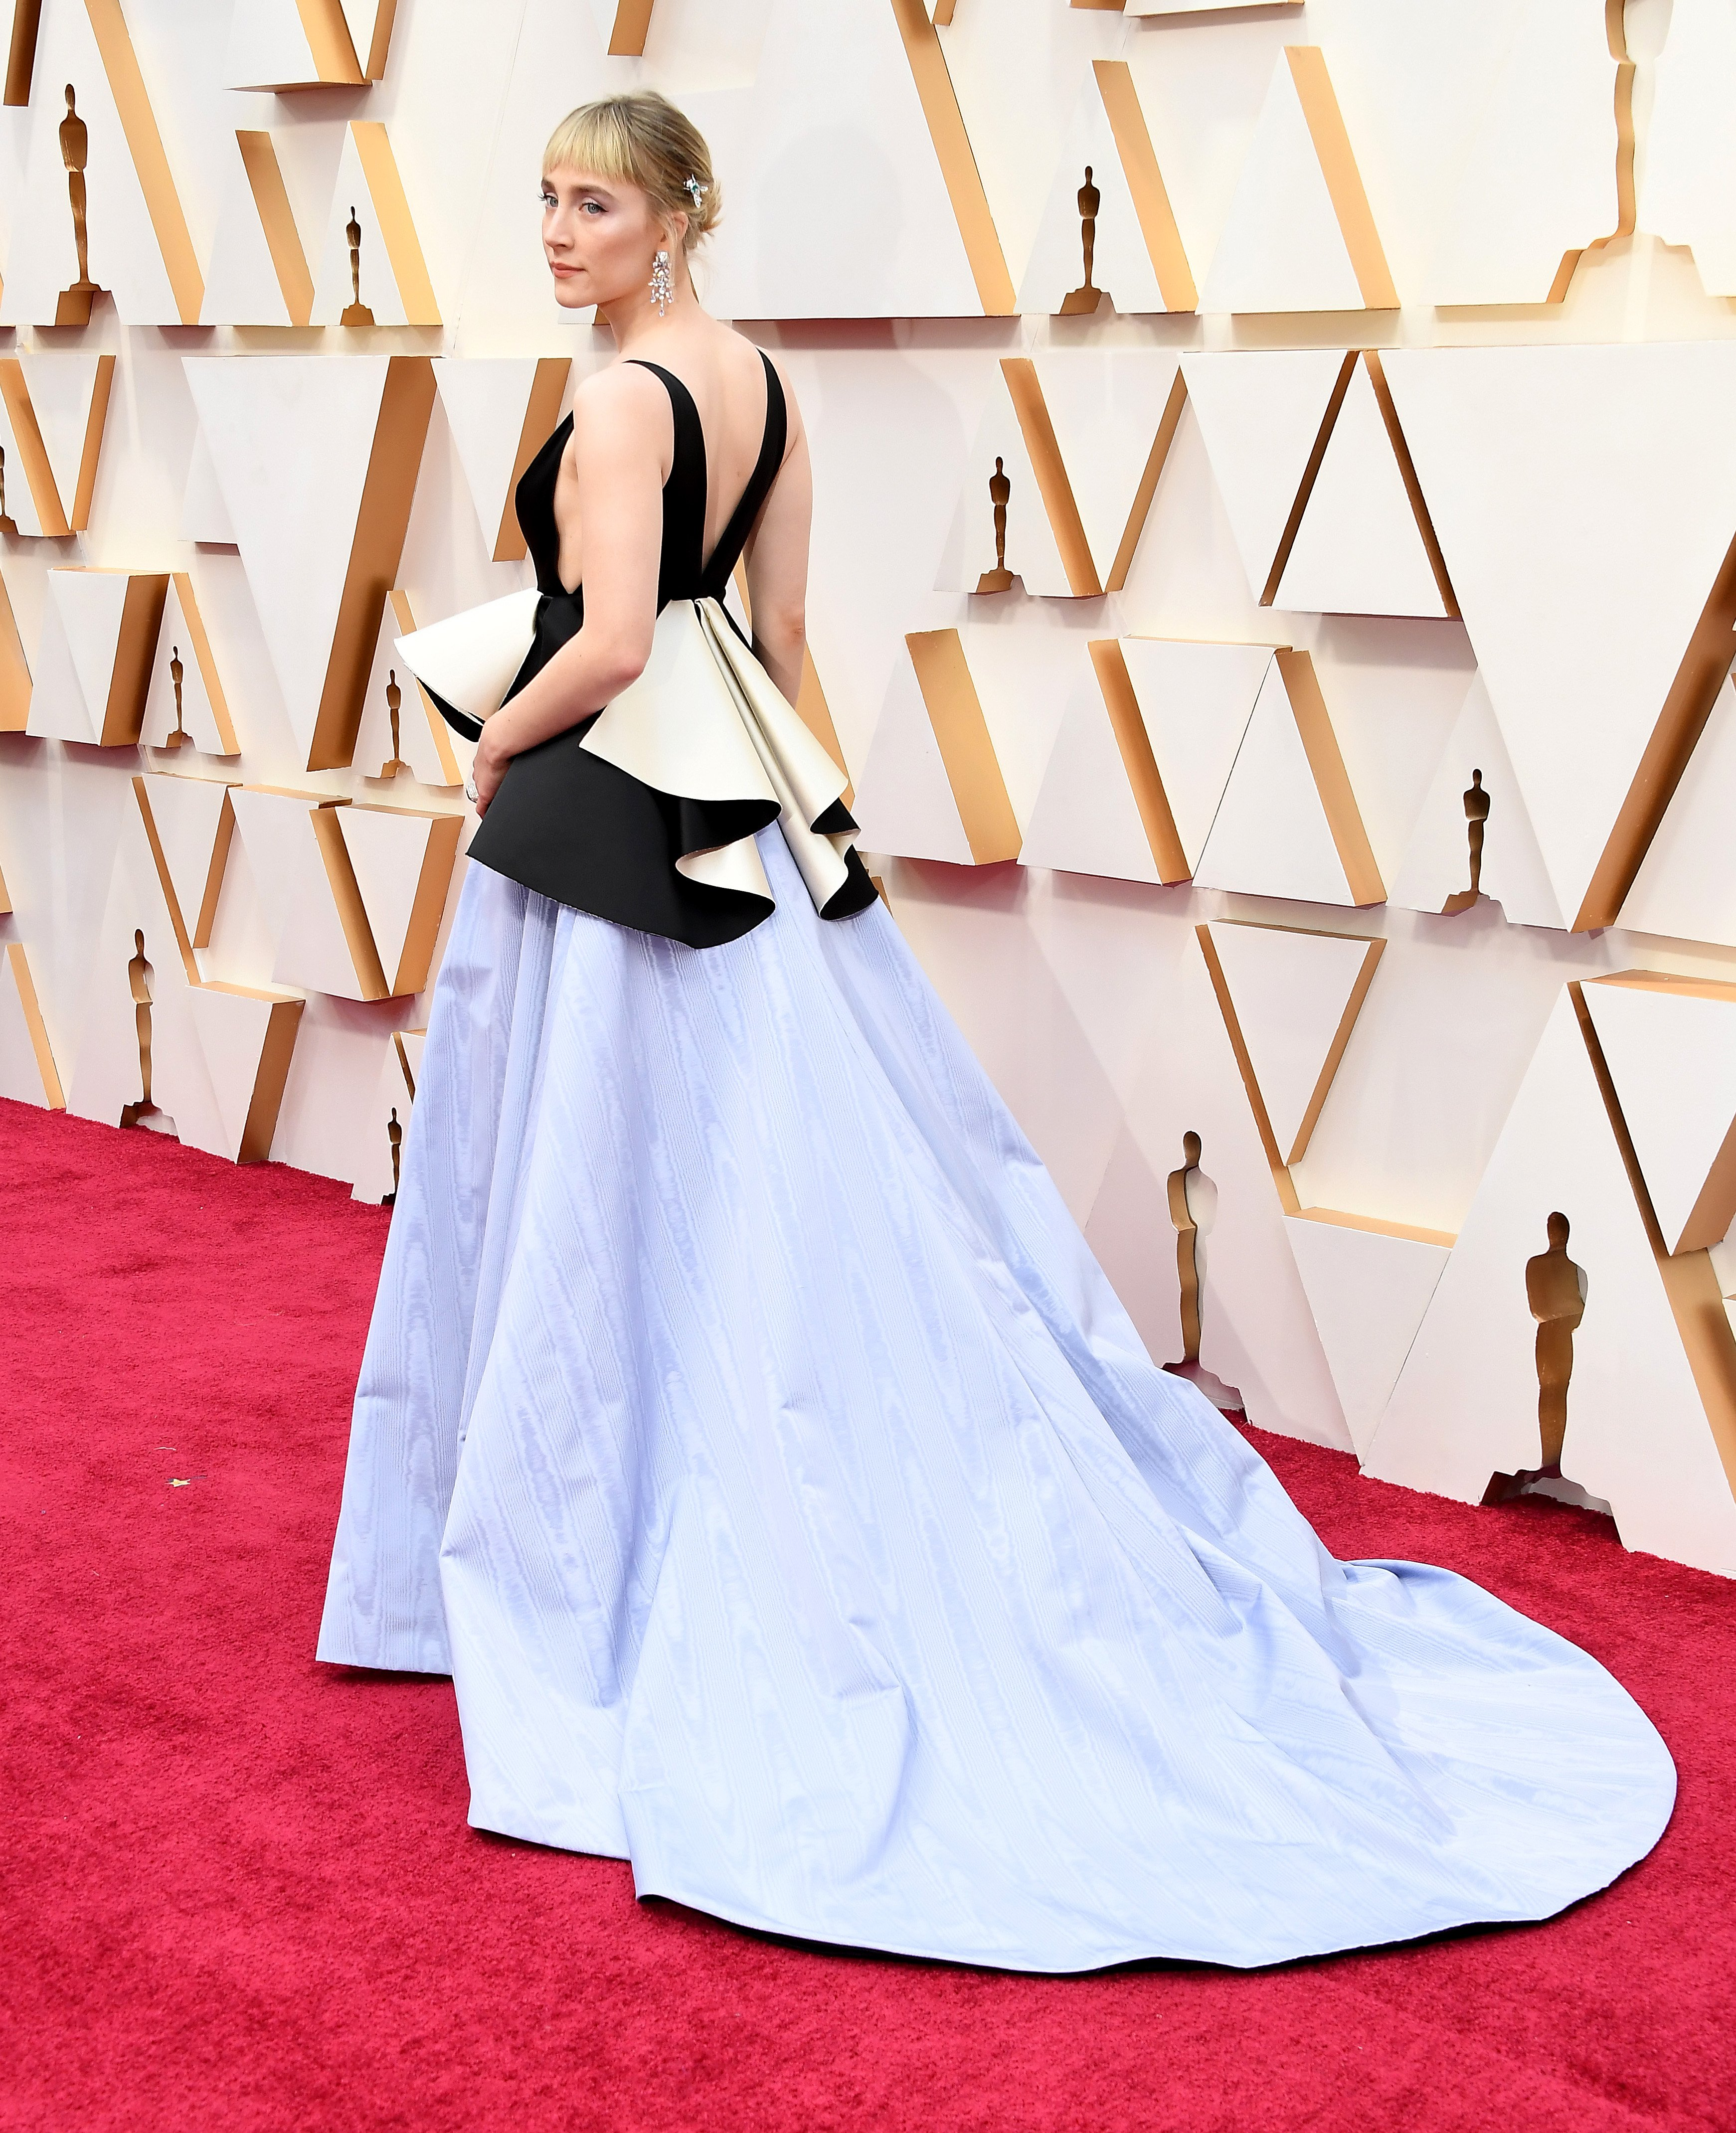 Saoirse Ronan at the 92nd Annual Academy Awards on February 9, 2020 in Hollywood, California. | Photo: Getty Images